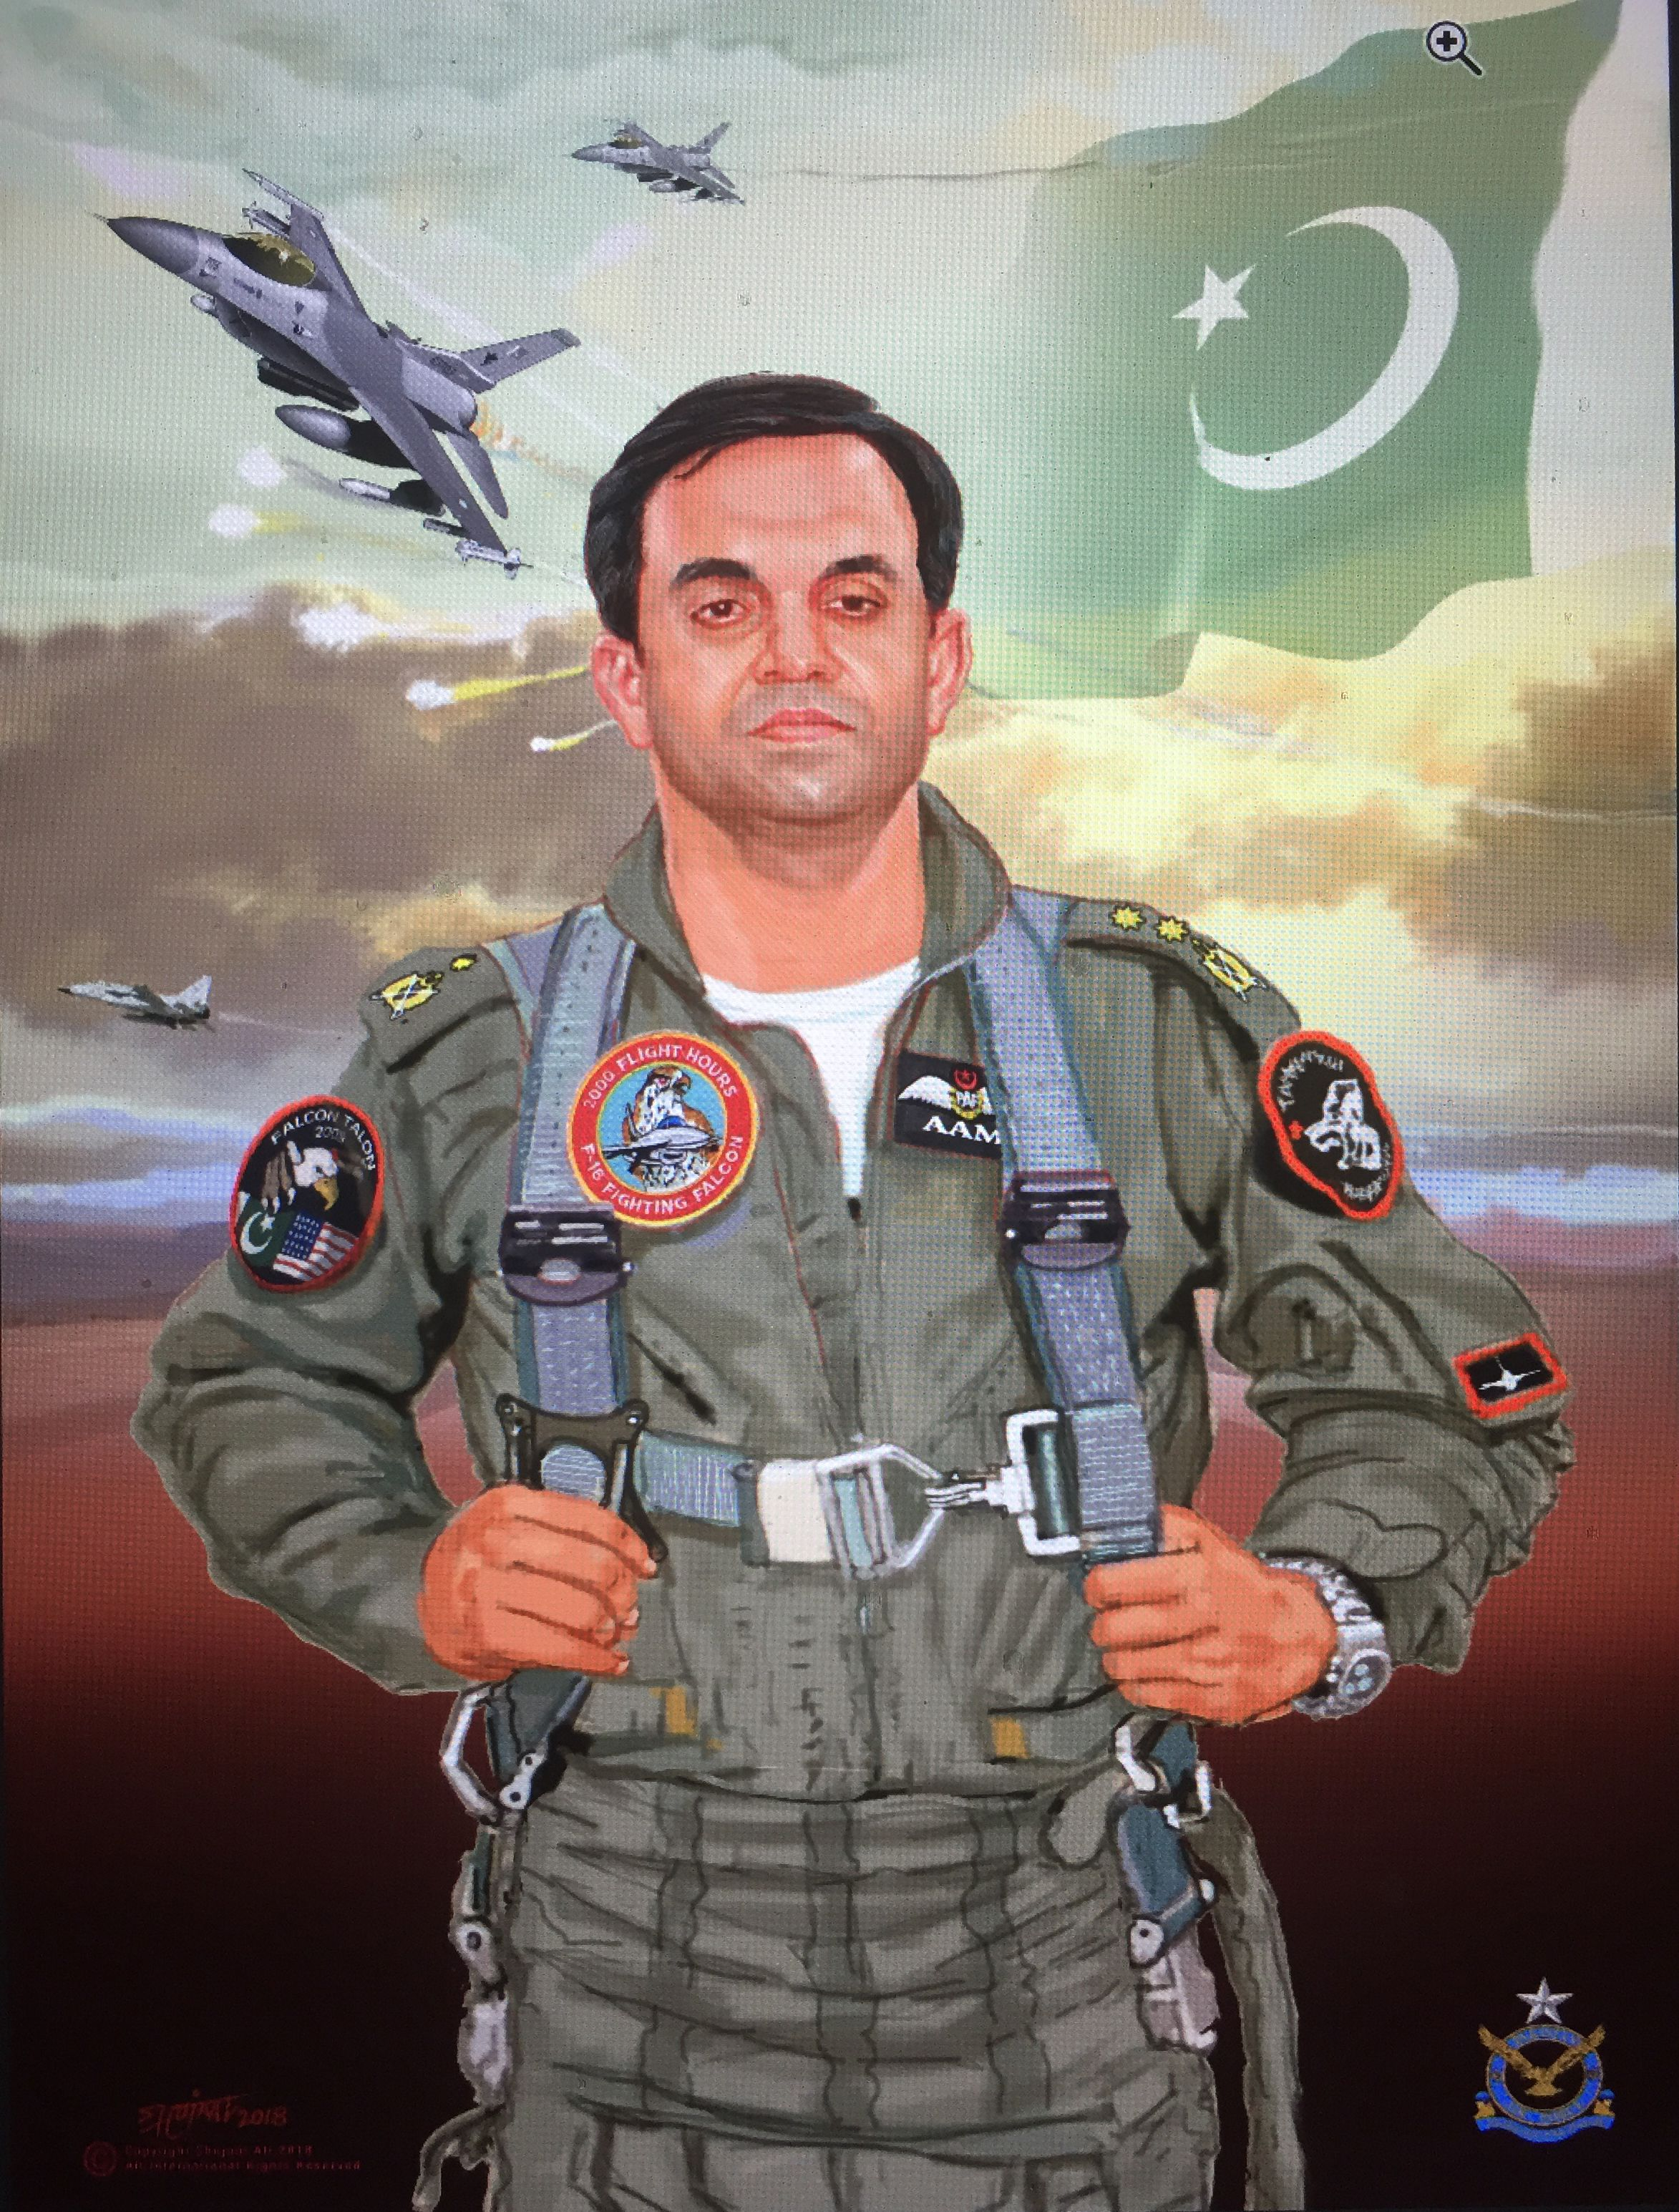 Pakistan Air Force Super Mushshak SMK 1711 976391